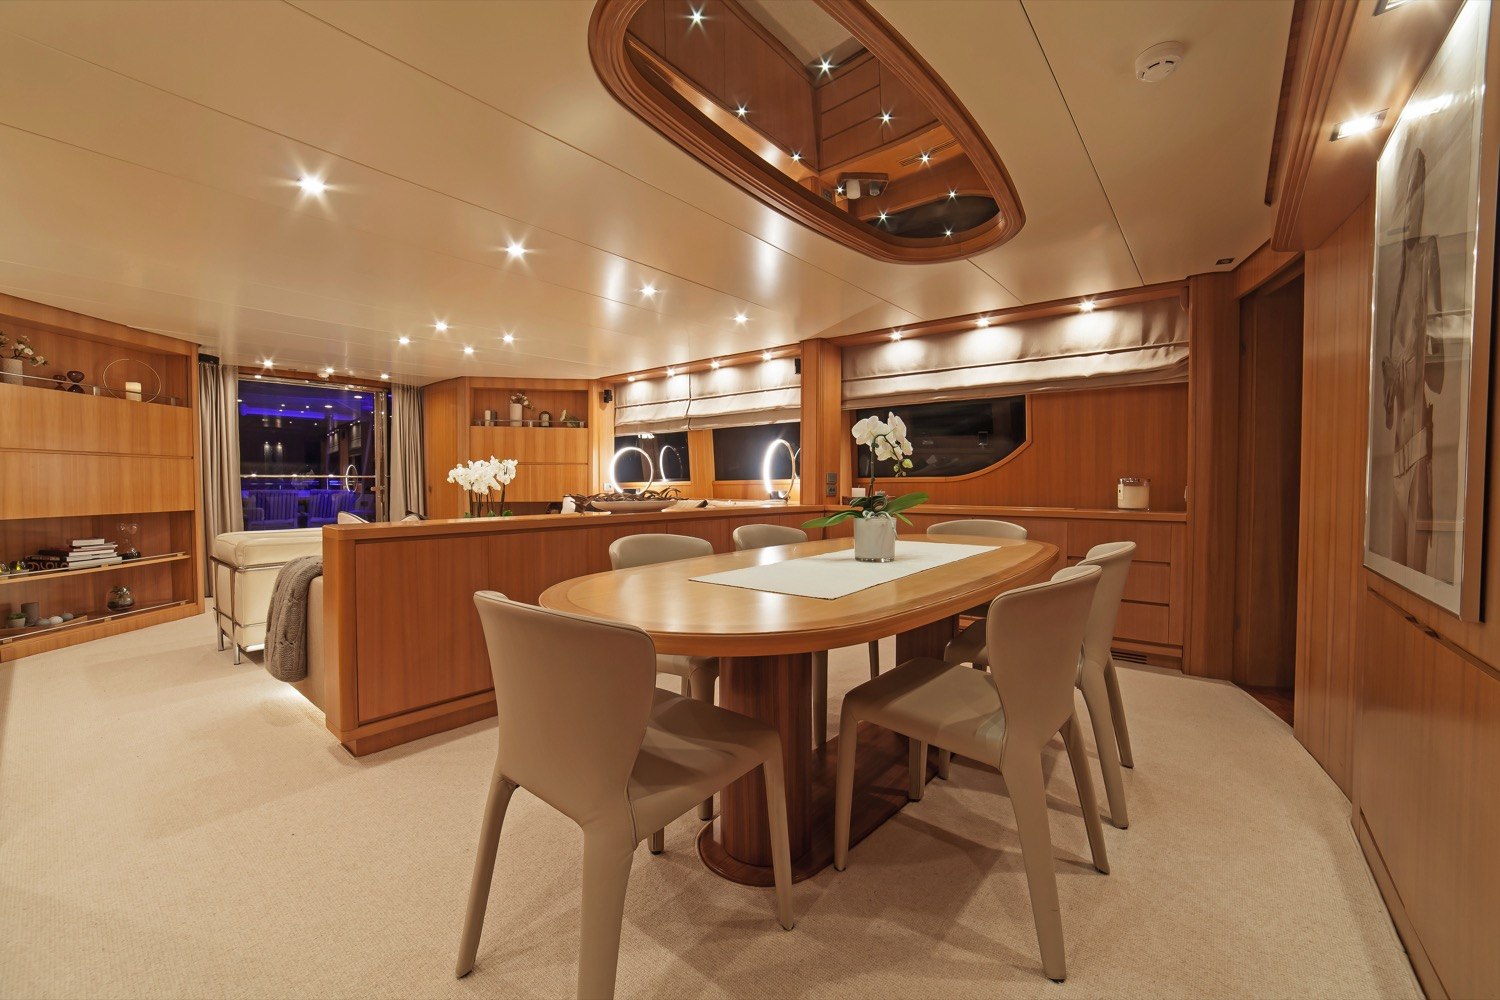 Sanlorenzo SL88 Yacht for sale 37